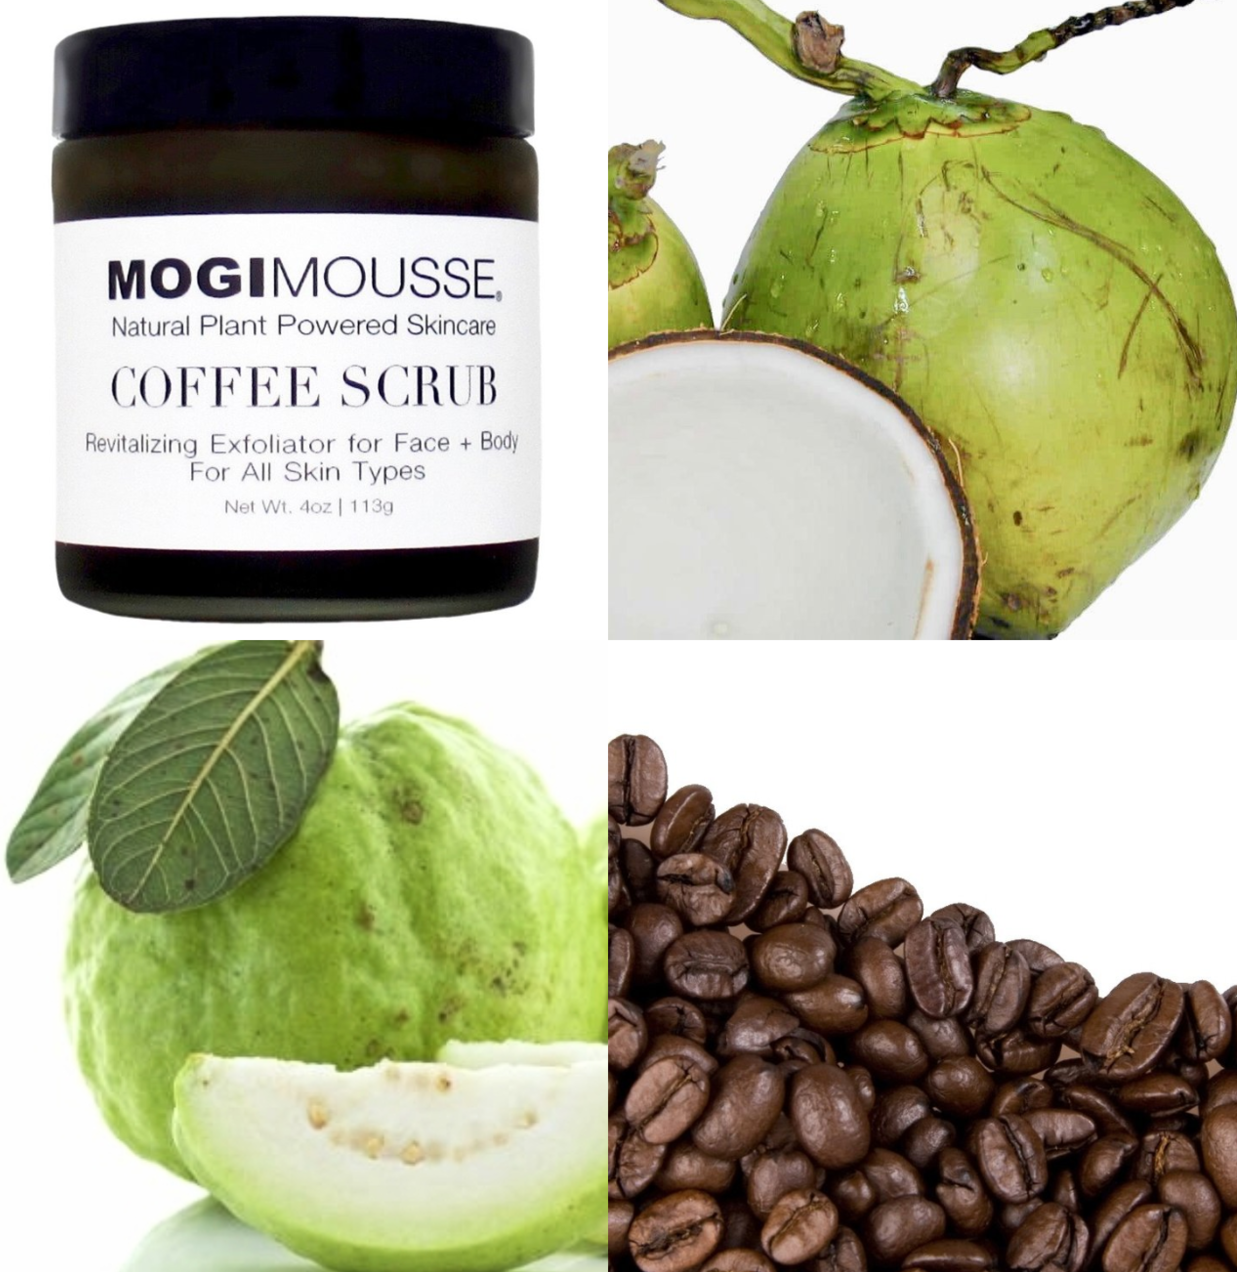 MOGI MOUSSE Coffee Scrub